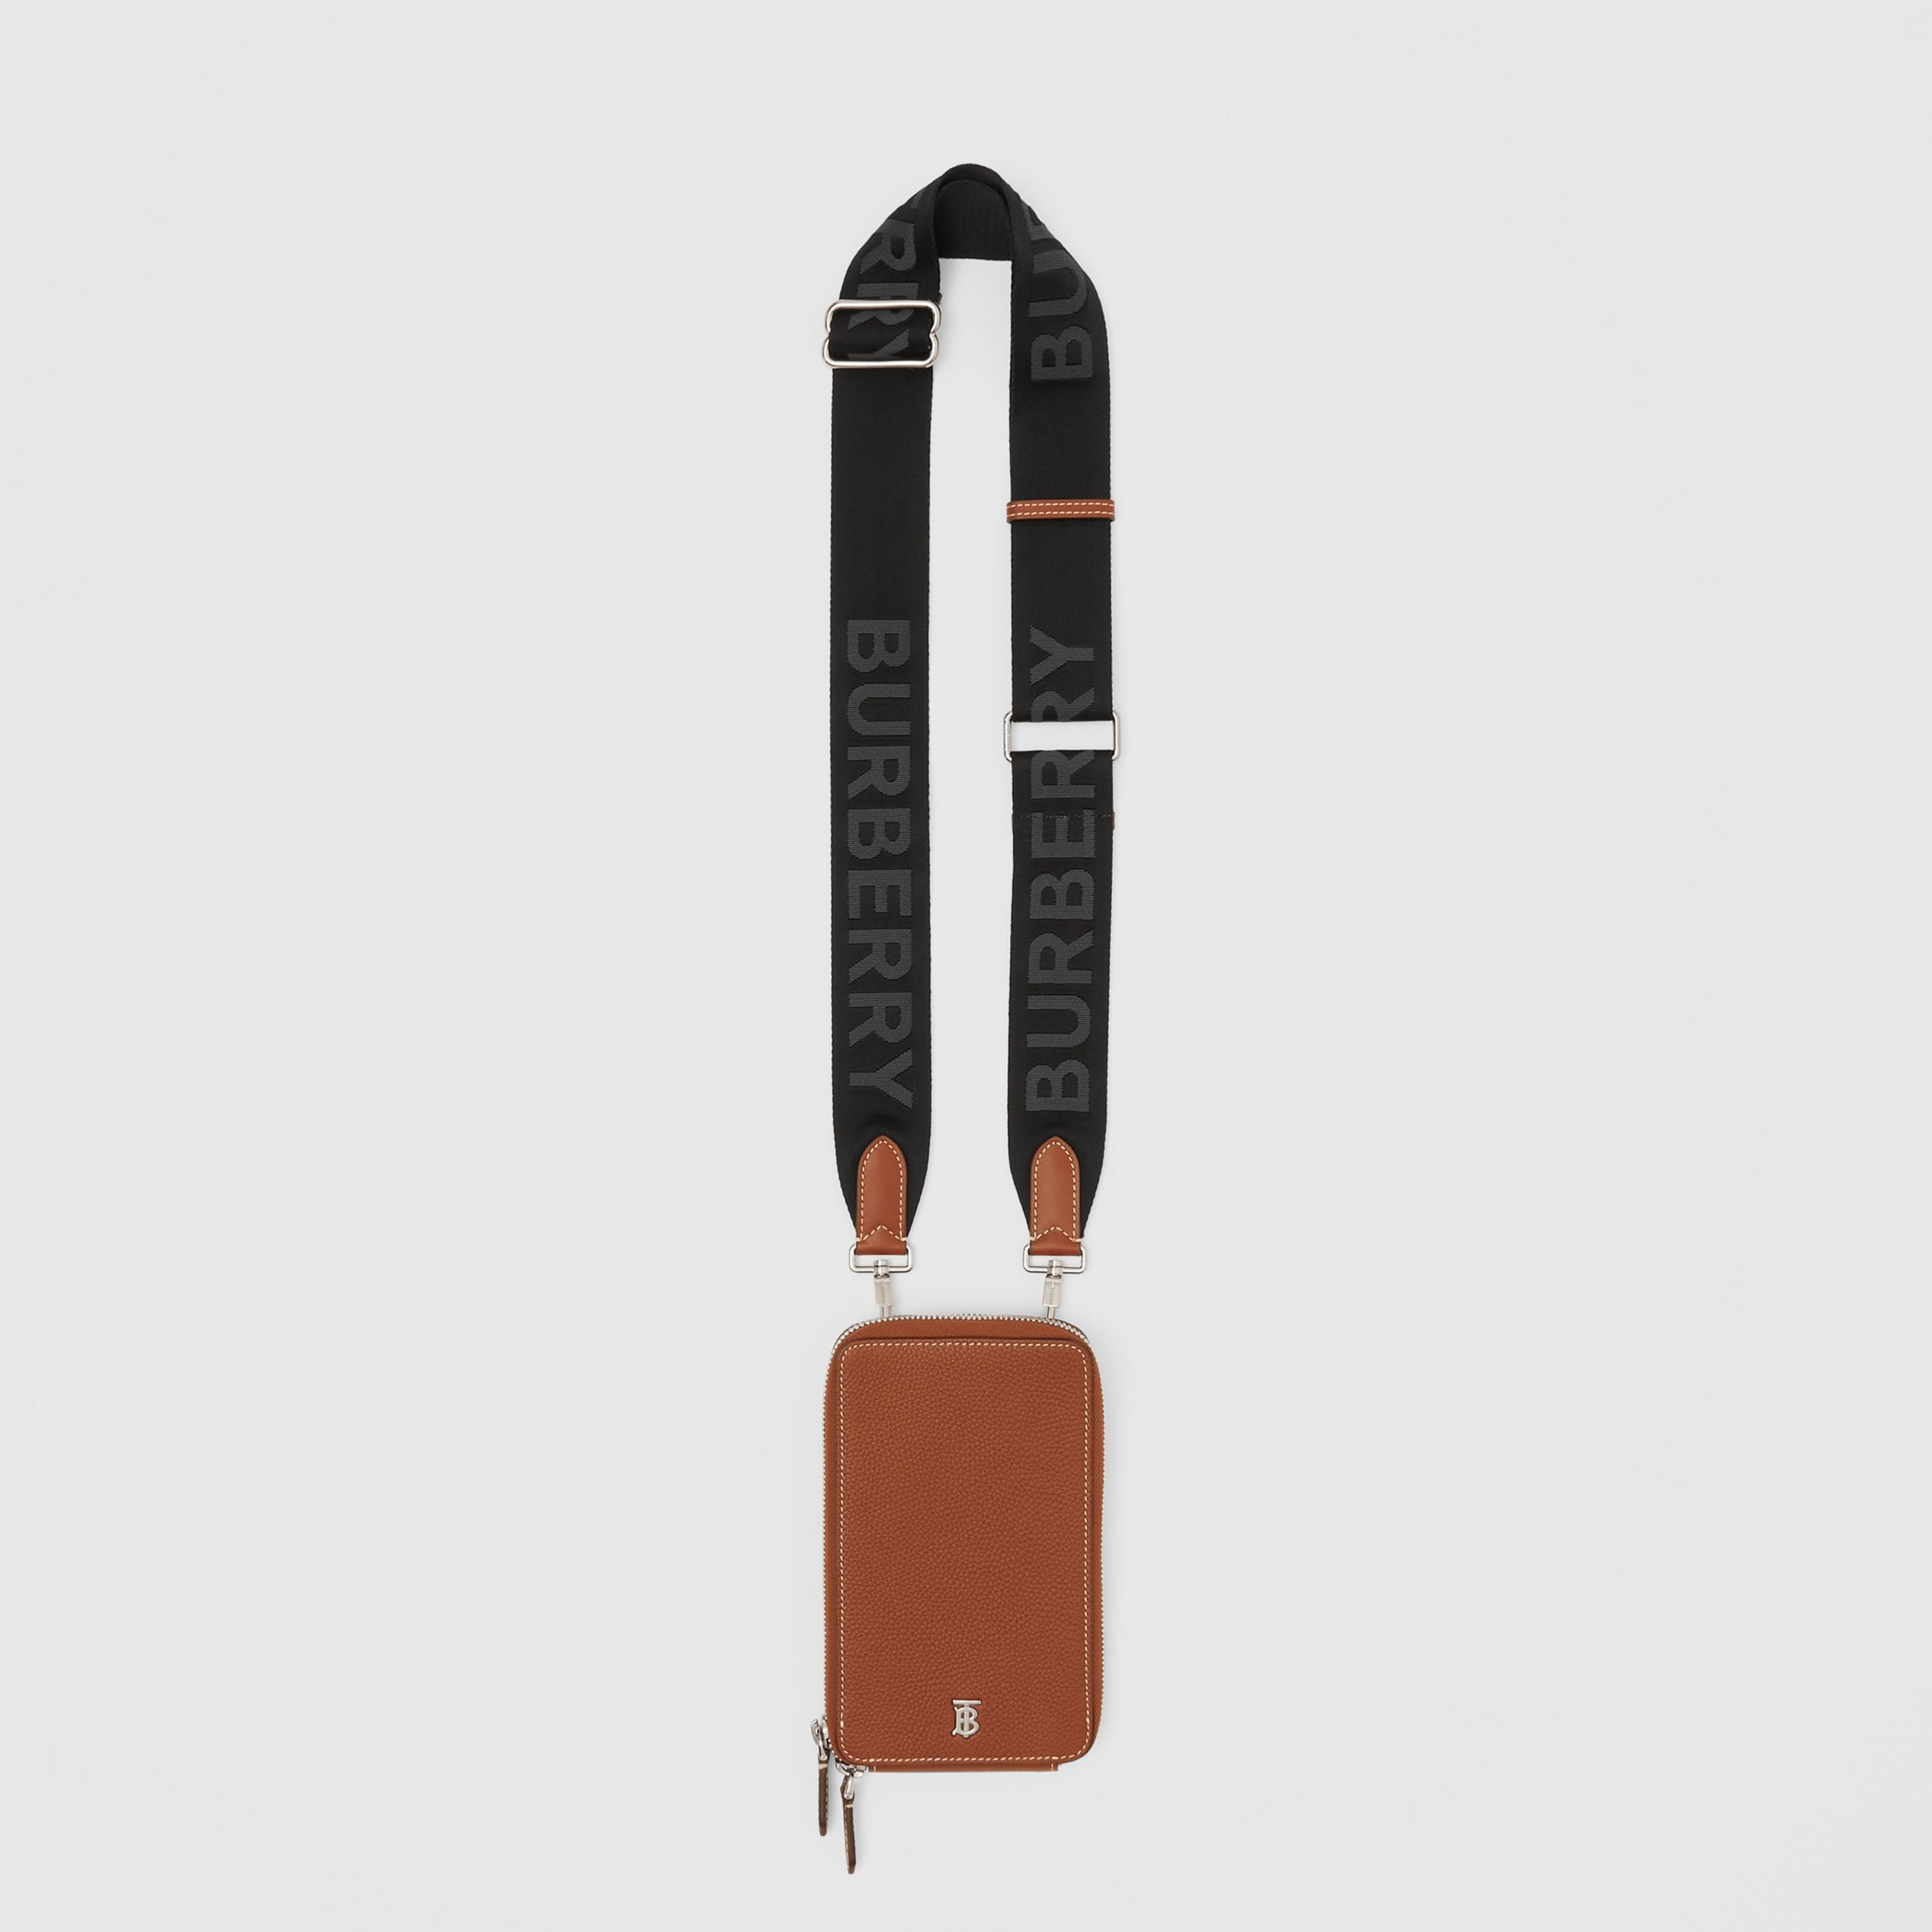 Grainy Leather Phone Case with Detachable Strap in Tan - Men | Burberry Canada - 1